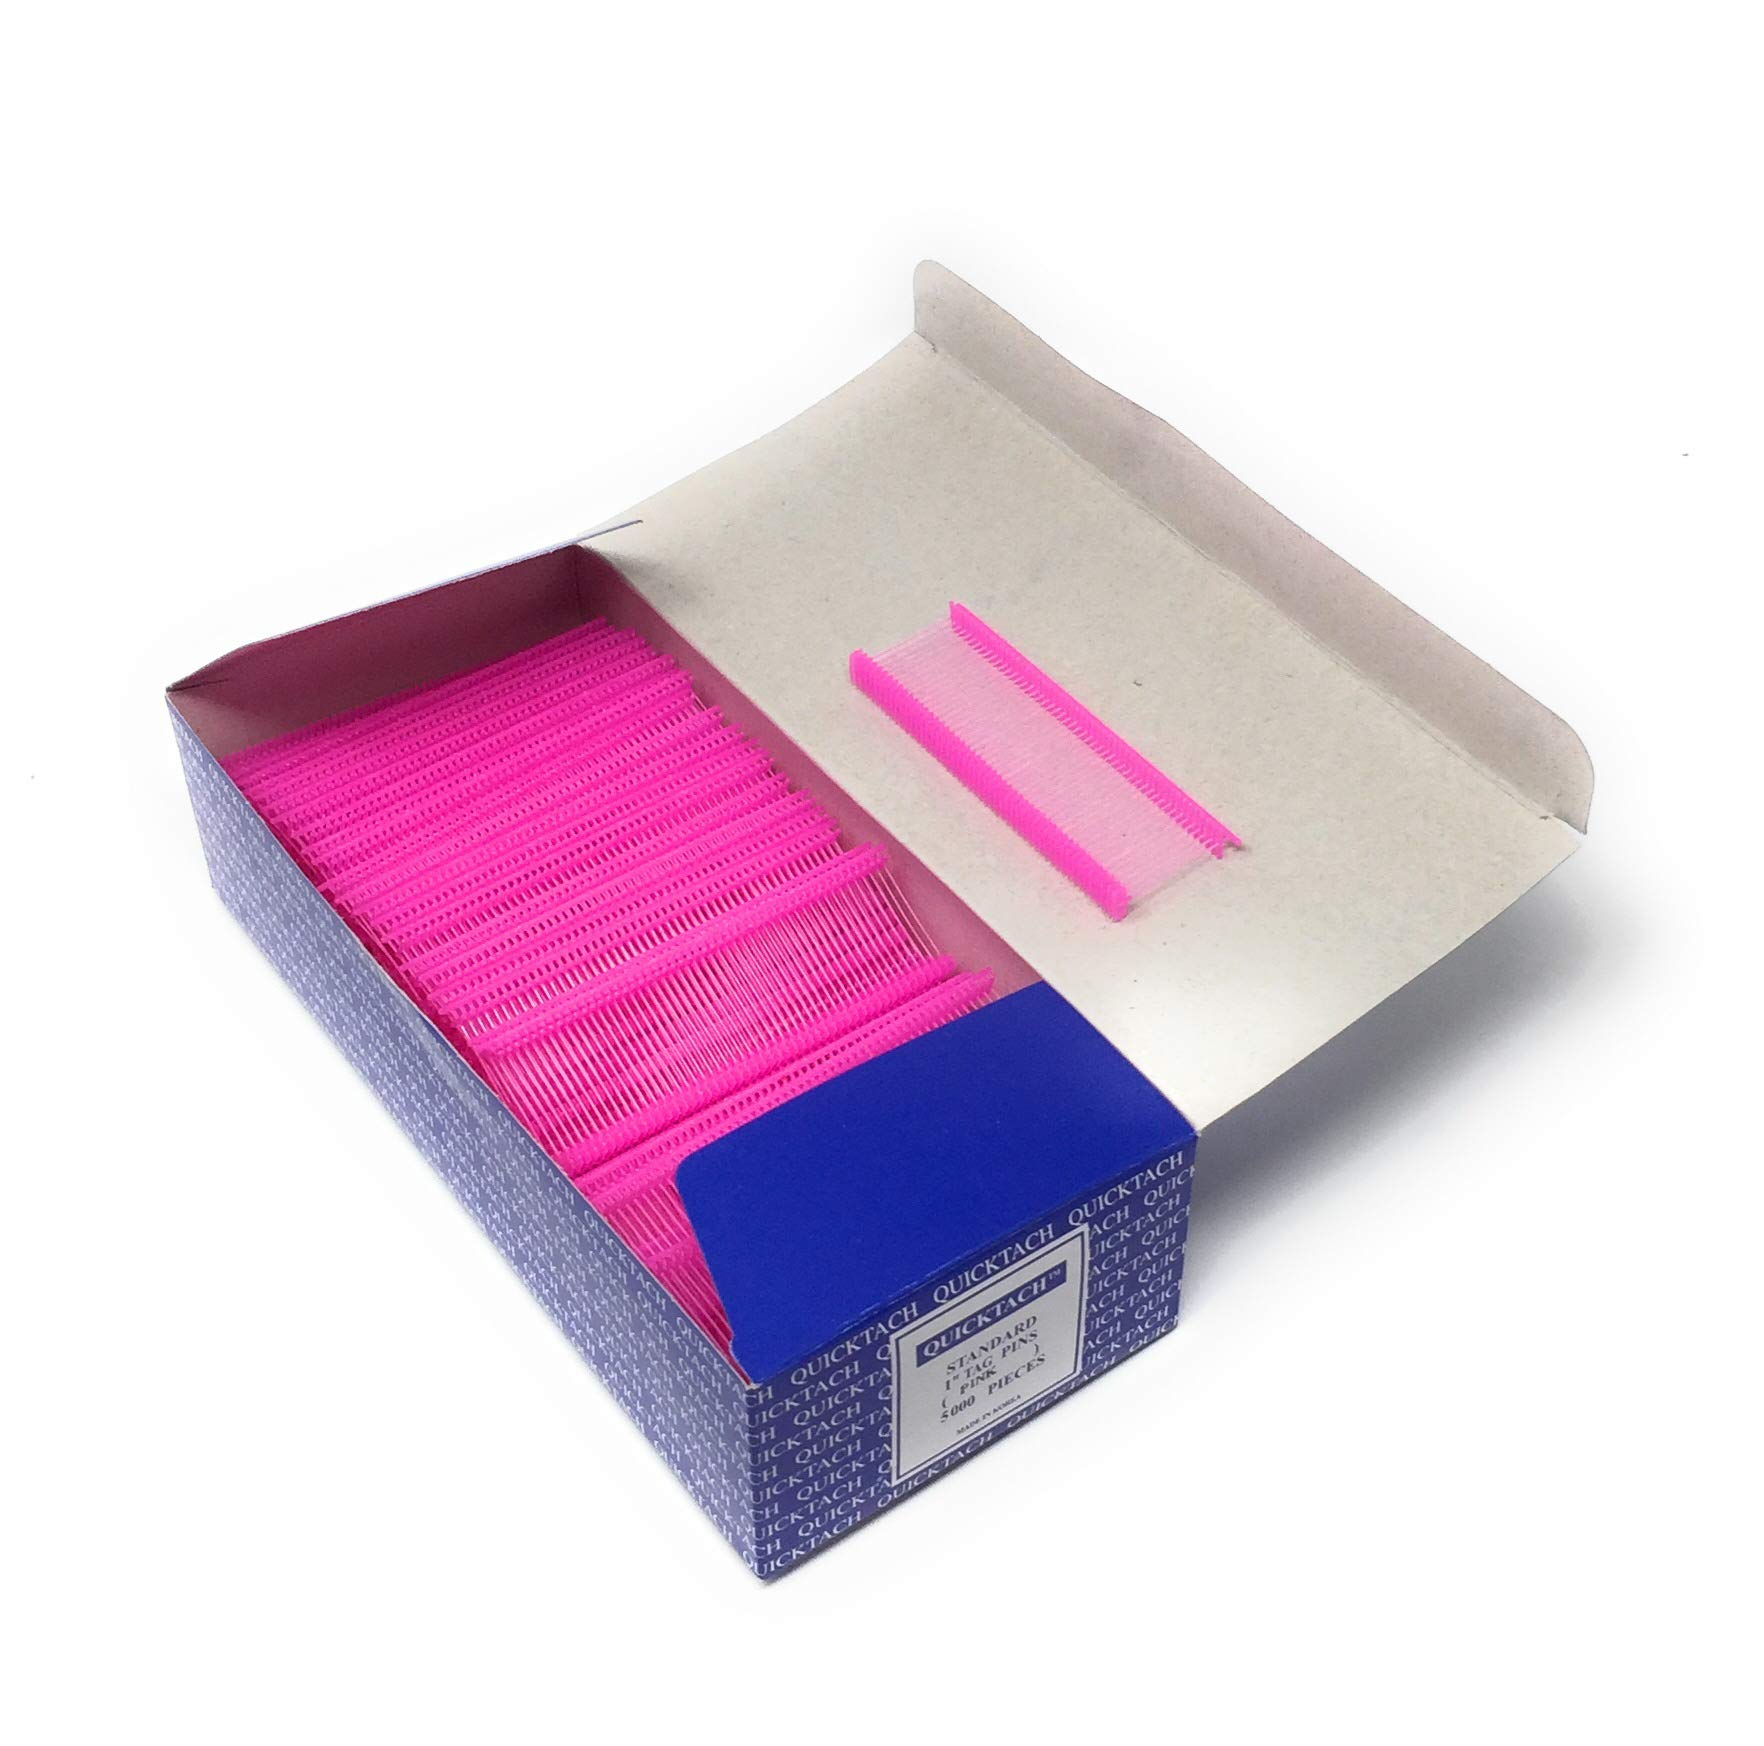 Pink Quicktach Tagging Gun Barbs Fasteners Standard 1 Inch Box of 5000 by ExecuSystems